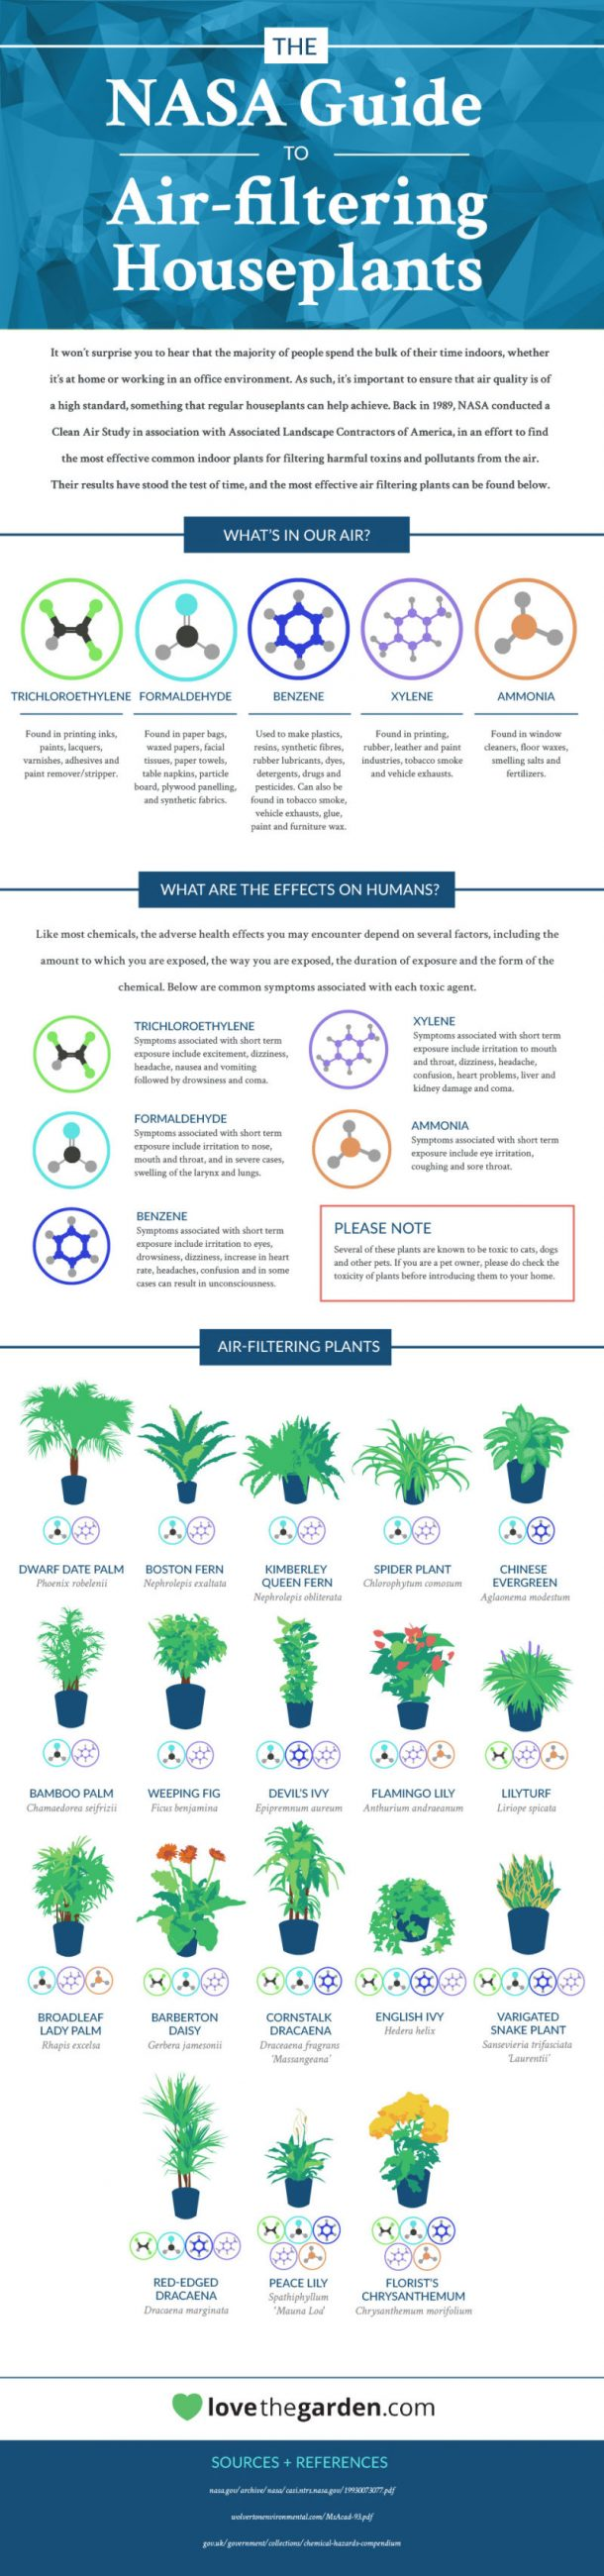 18 Plants That Are Best At Filtering Air In Your Home According To NASA 2